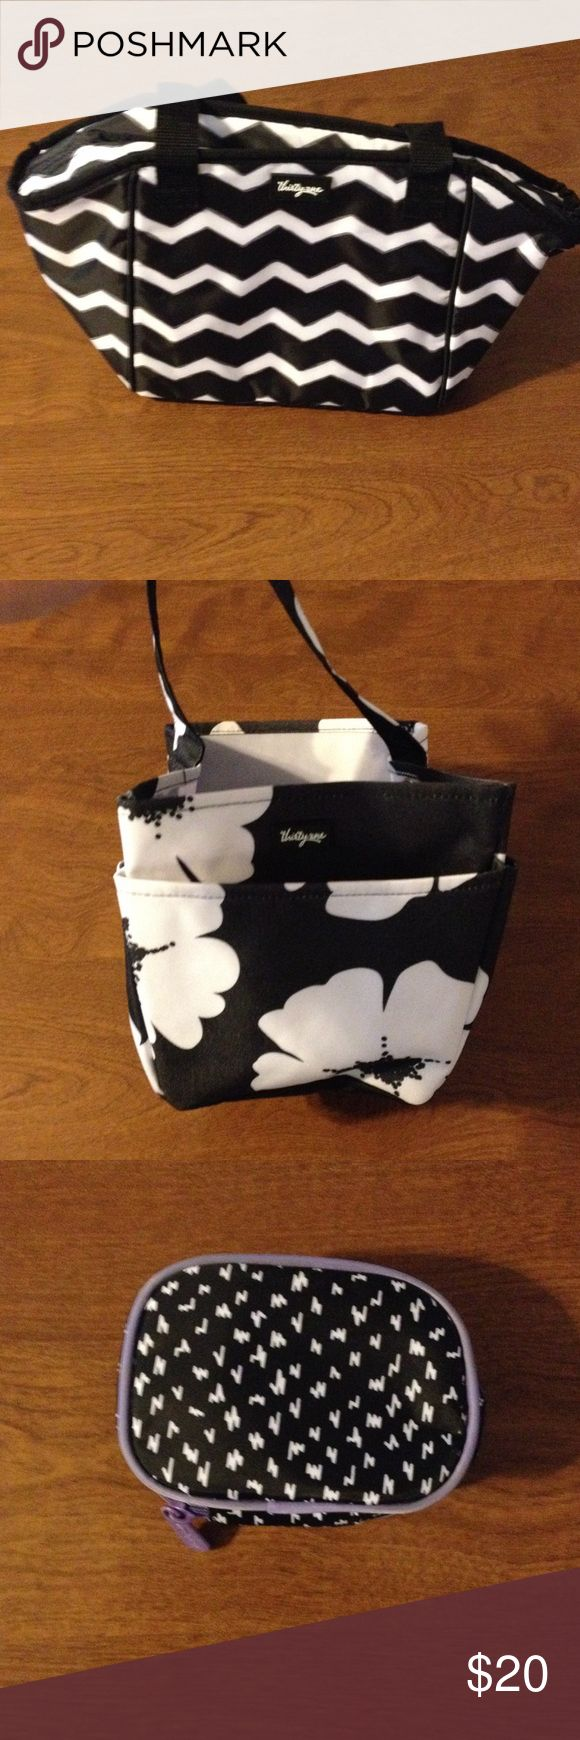 Black and white bags from thirty one Chevron is a lunch box, the second one is a organizer caddy  and small carrying case. All new thirty-one Bags